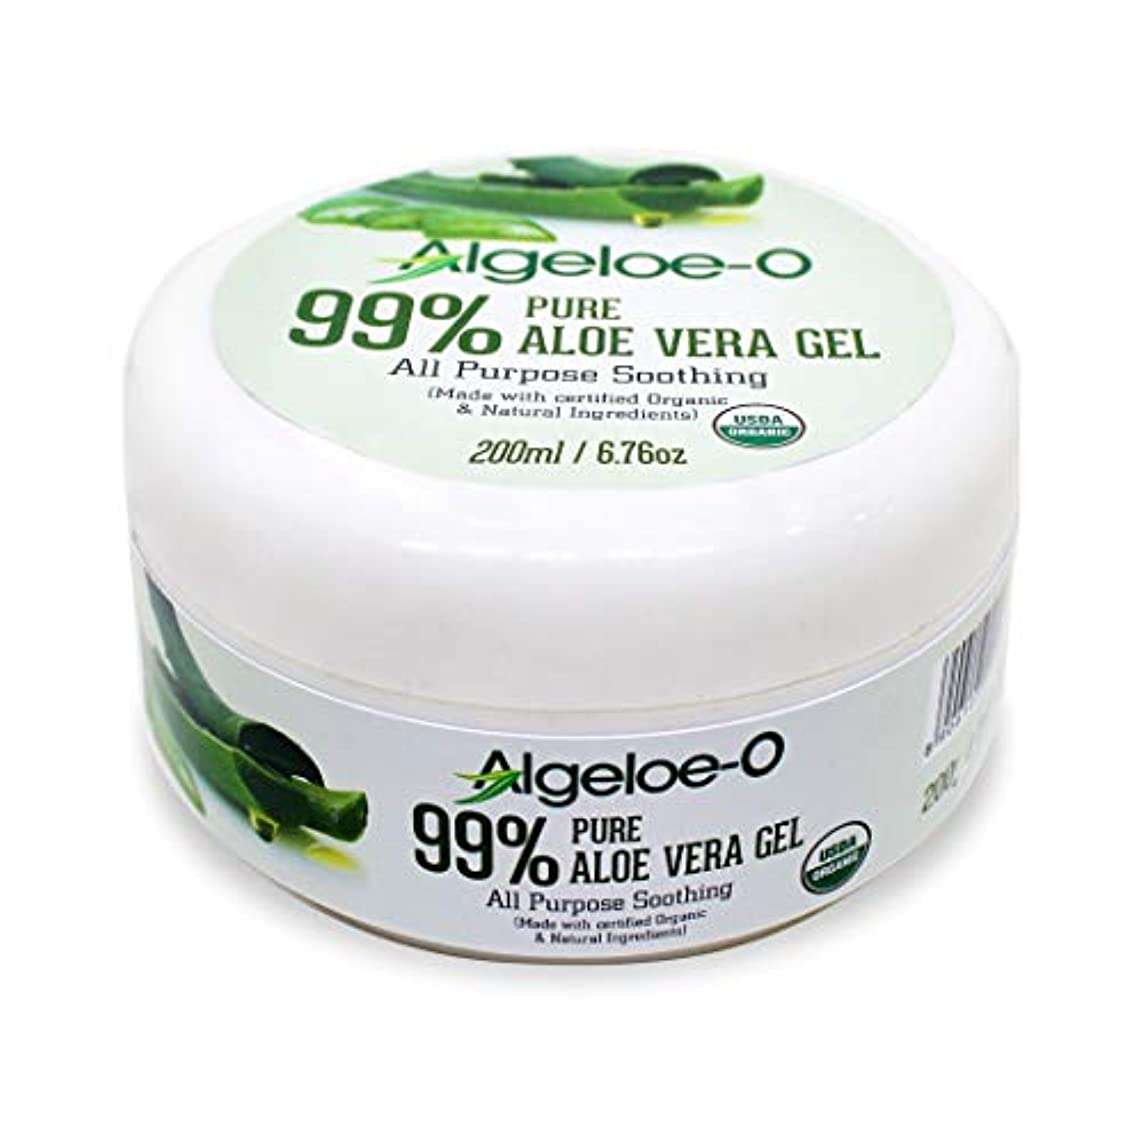 ラフ睡眠法令削減Algeloe-O  Organic Aloe Vera Gel 99% Pure Natural made with USDA Certified Aloe Vera Powder Paraben, sulfate free with no added color 200ml/6.76oz.